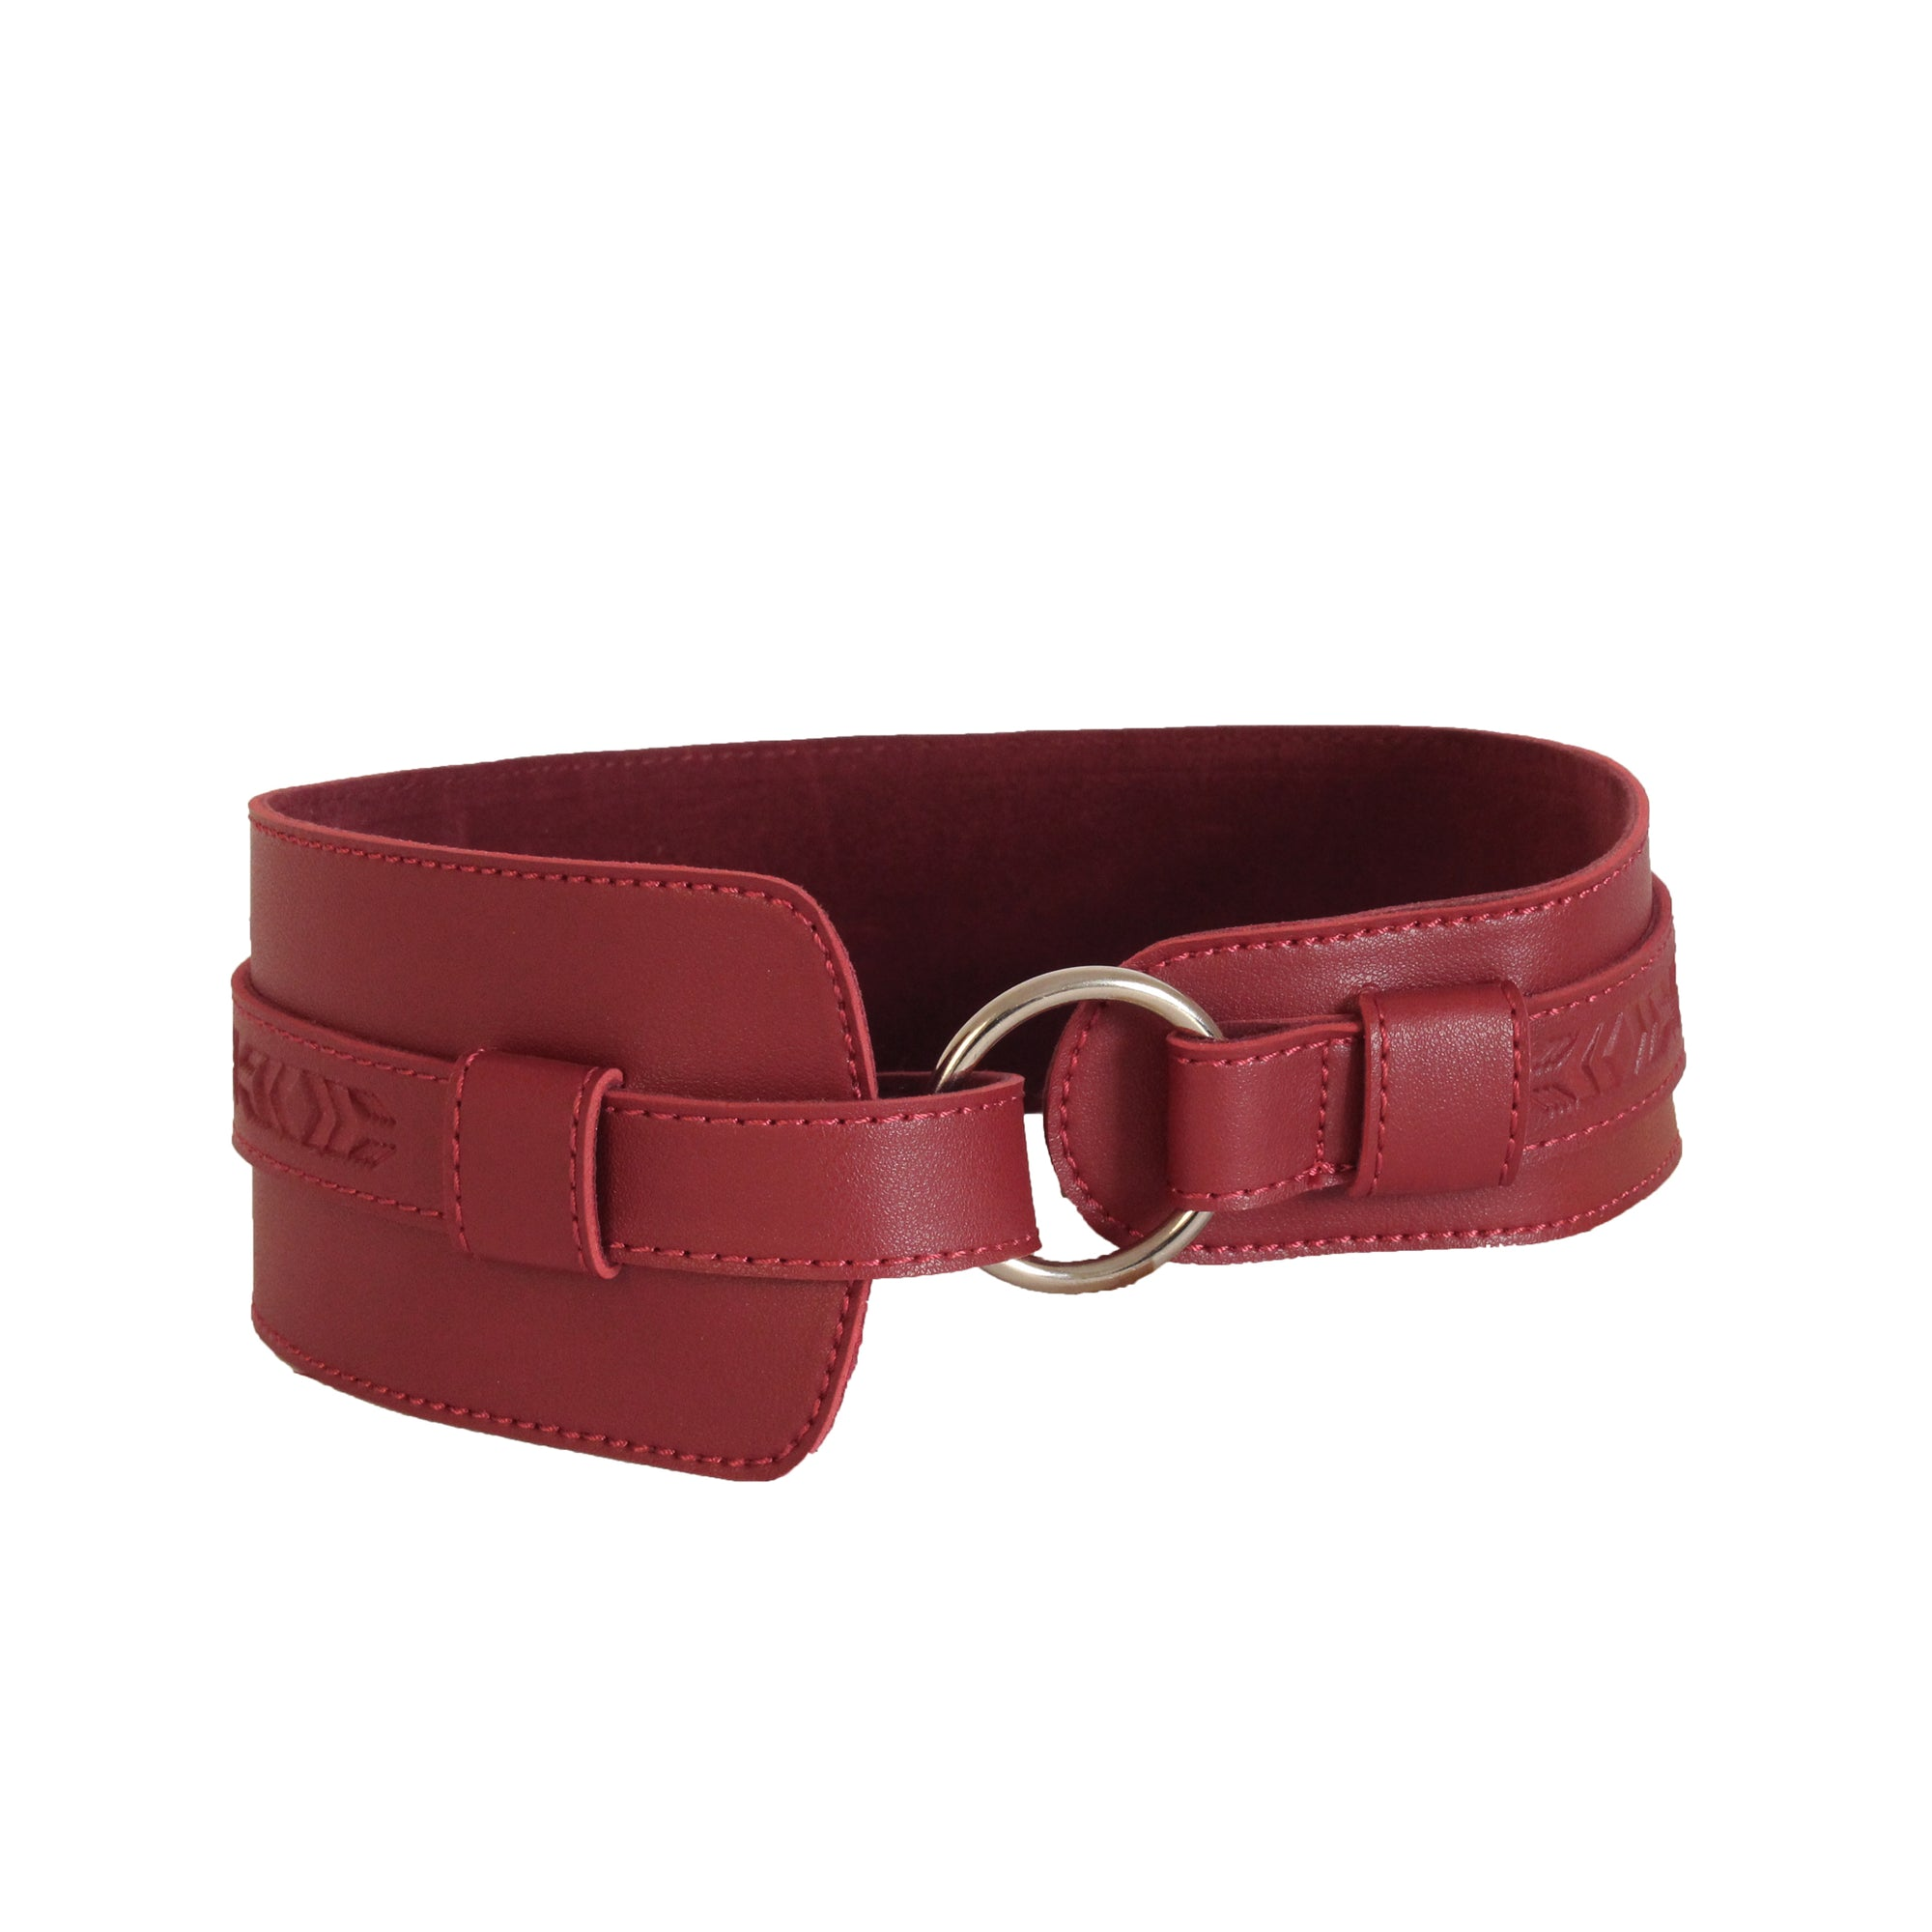 Waistband Free-size Belt Burgundy